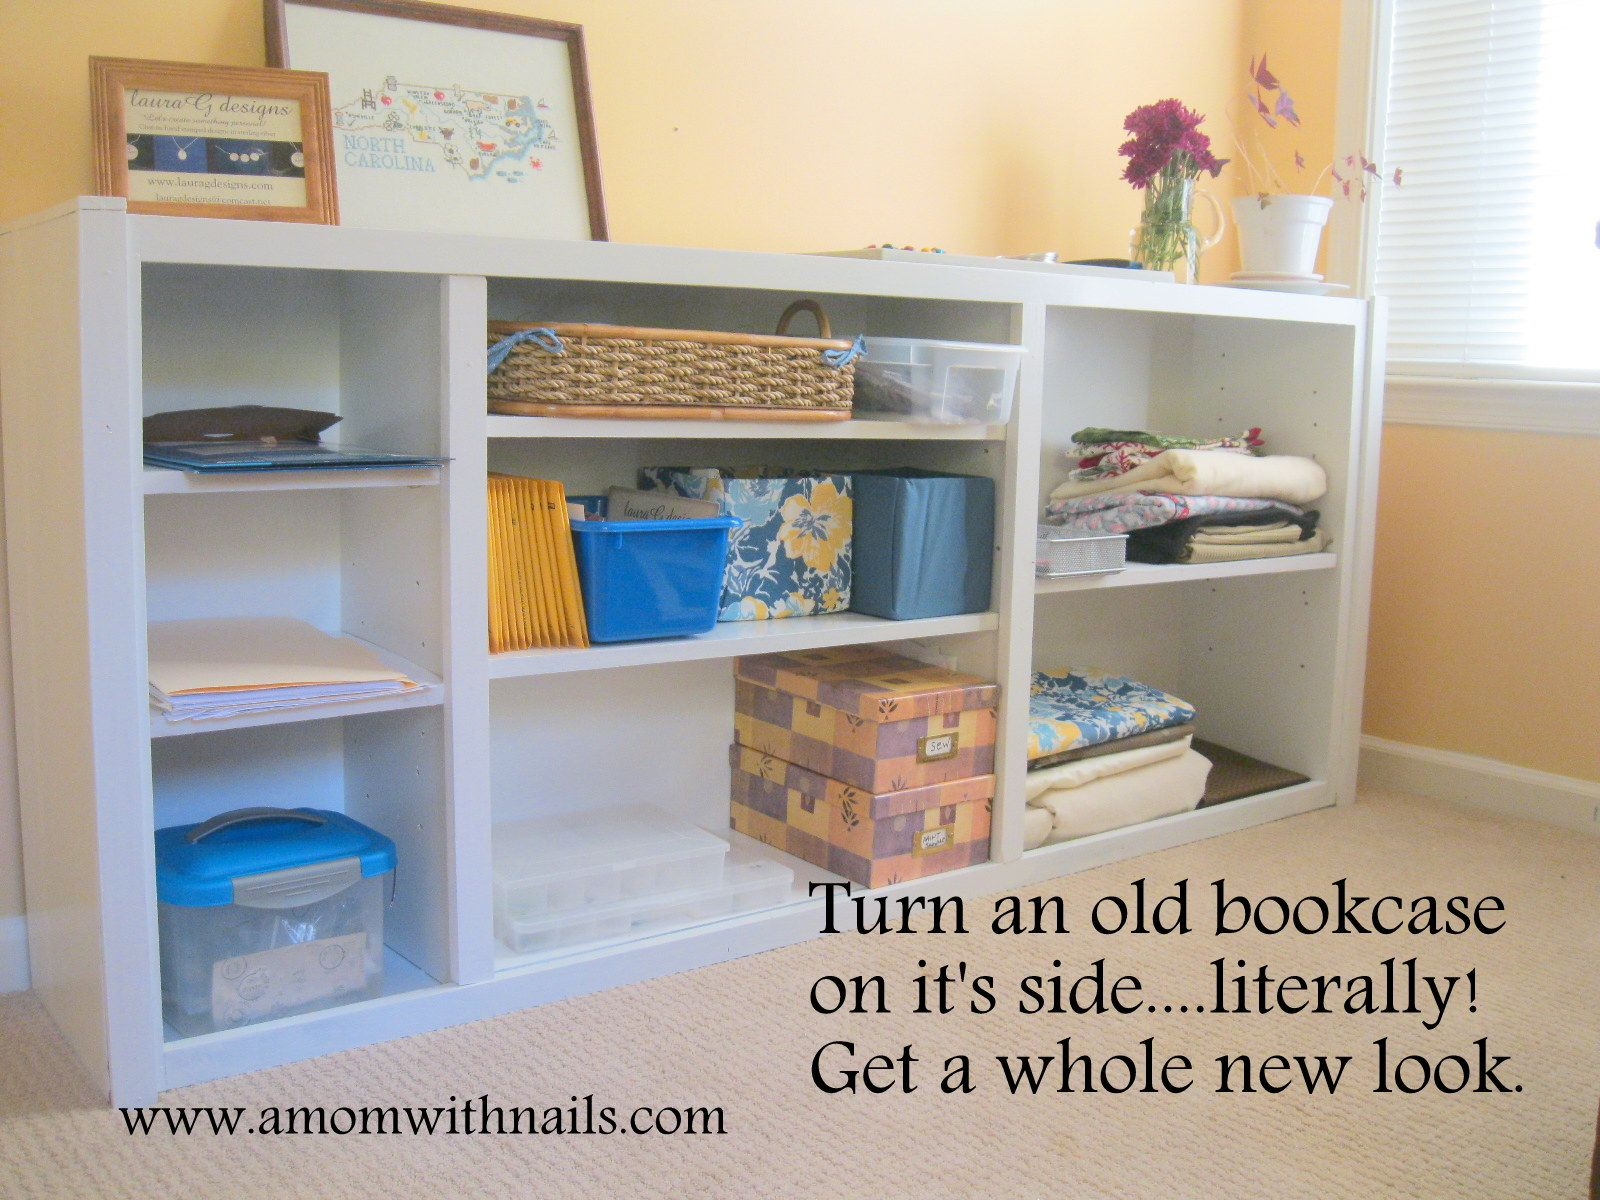 Turn An Old Bookcase On Its Side And Make It New Again Bookcase Redo Bookcase Horizontal Bookcase